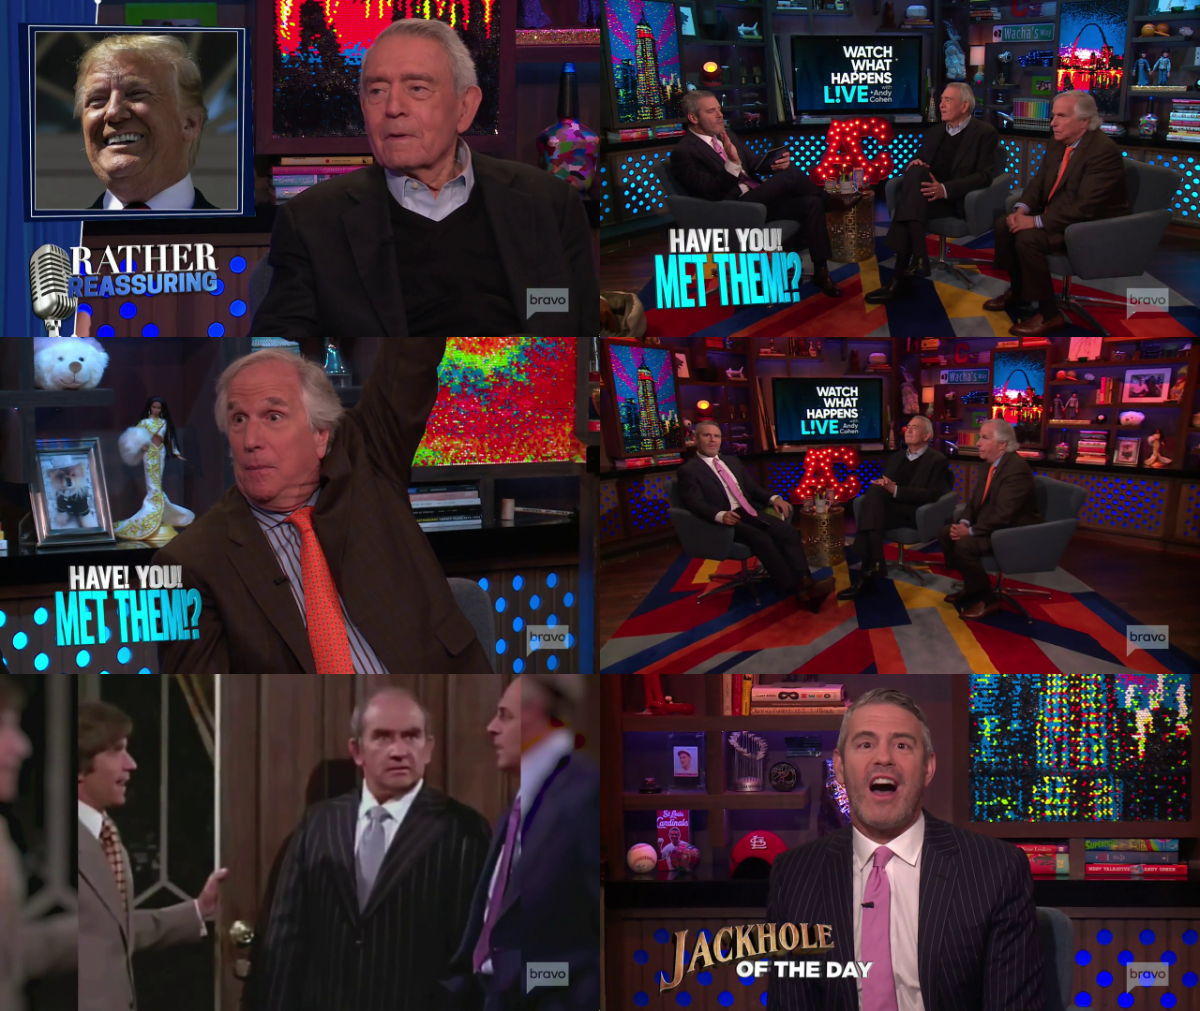 123538169_watch-what-happens-live-2019-10-03-dan-rather-and-henry-winkler-720p-web-x264-li.png